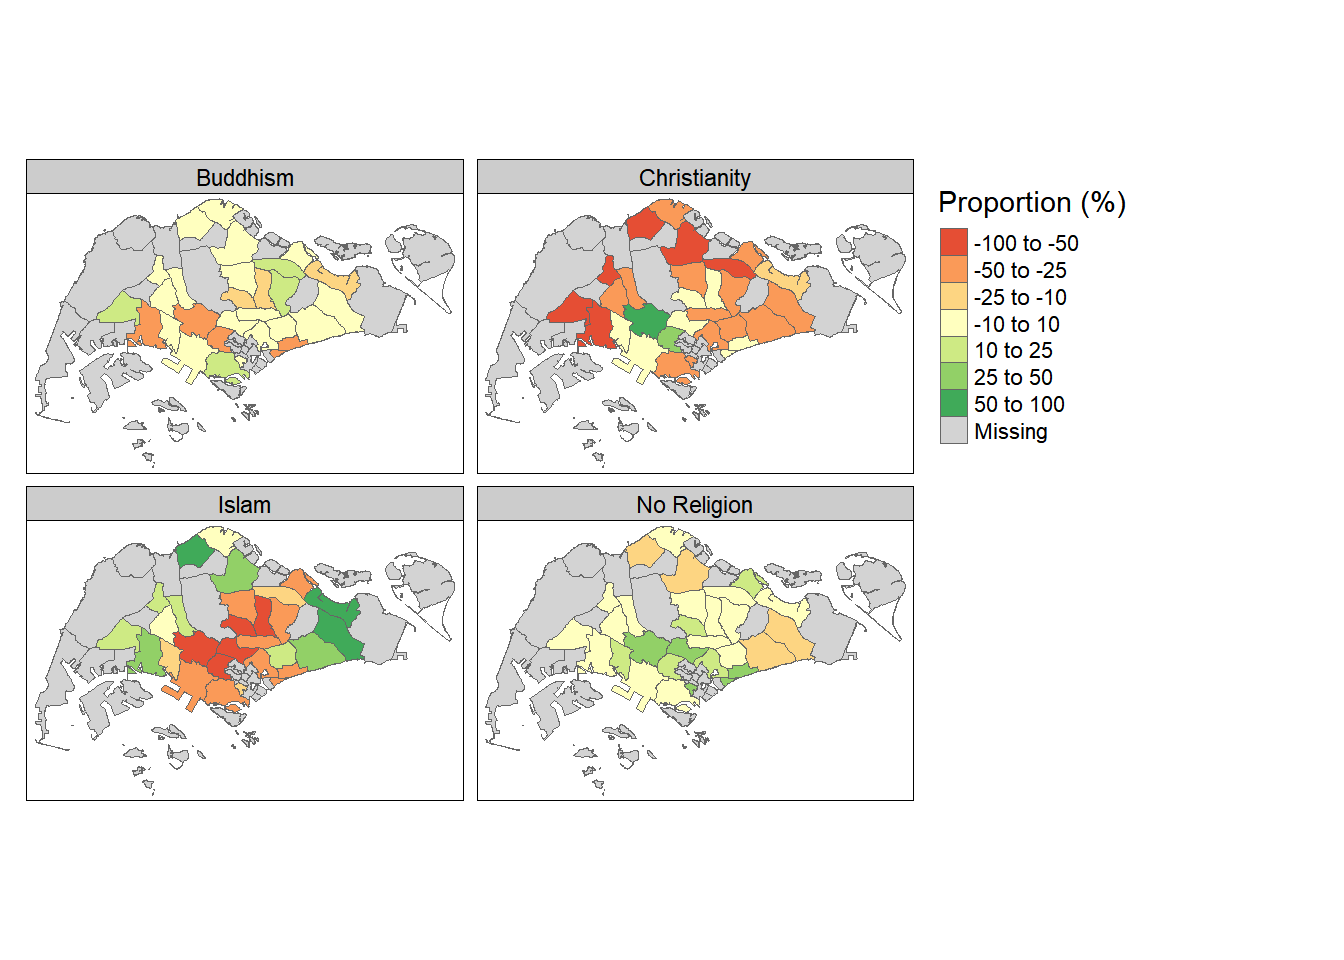 Distribution of Religious Beliefs (Relative to National Average)